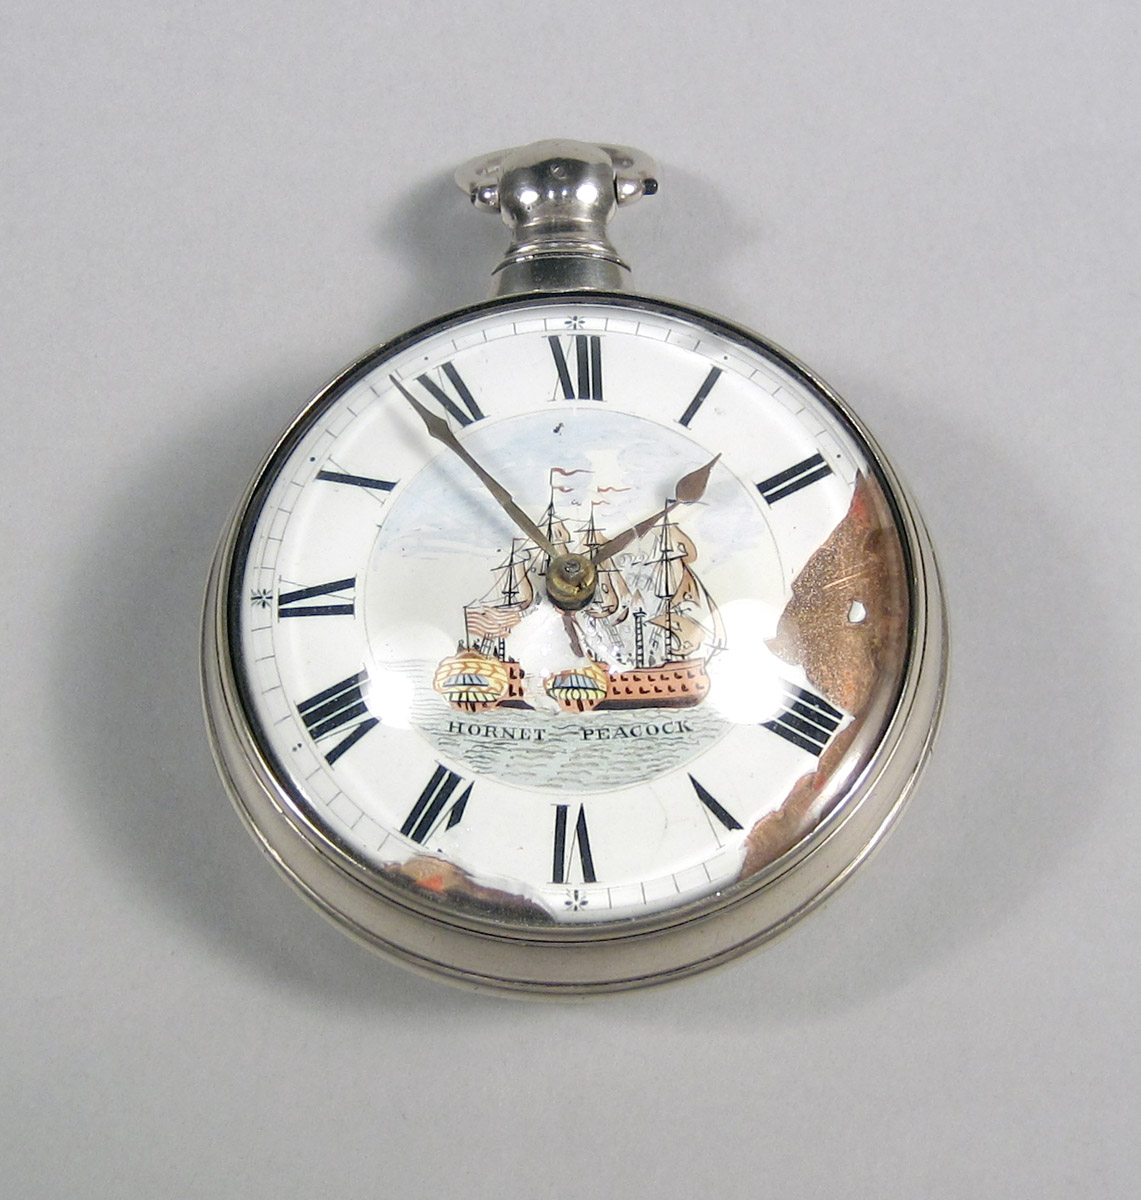 1957.0041.002 A-C Silver Pocket watch upper surface